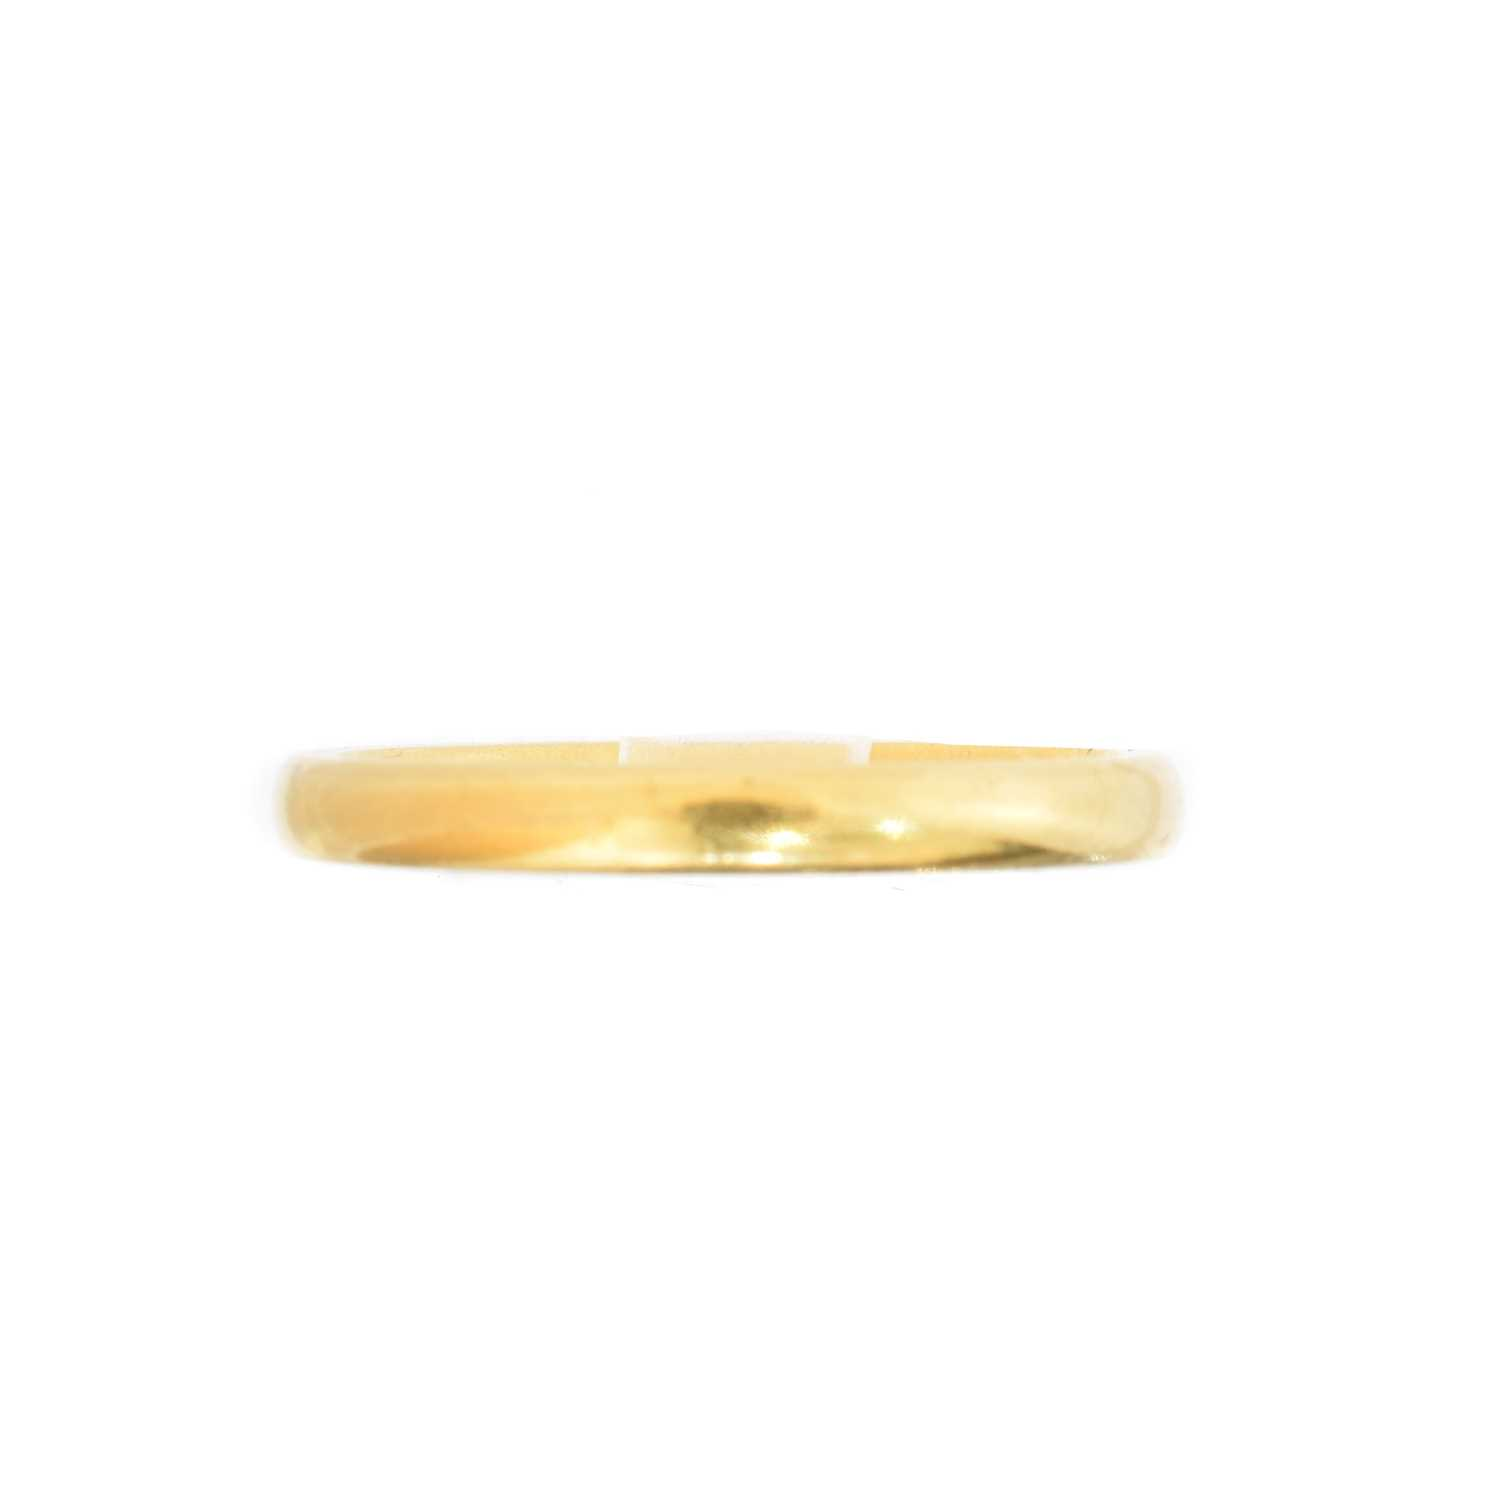 Lot 41 - A 22ct gold band ring